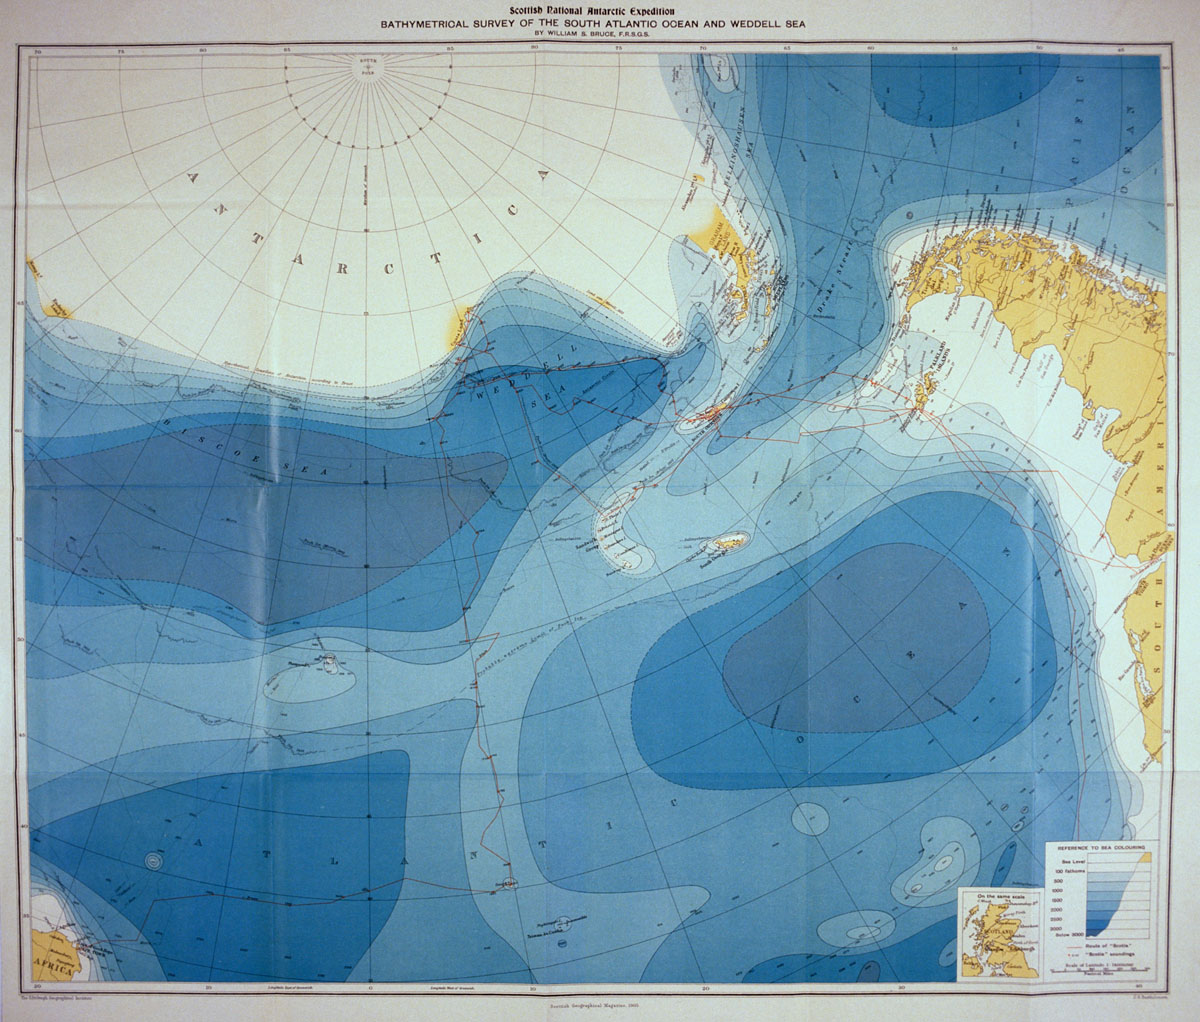 Bathymetrical survey of the South Atlantic Ocean and the Weddell Sea